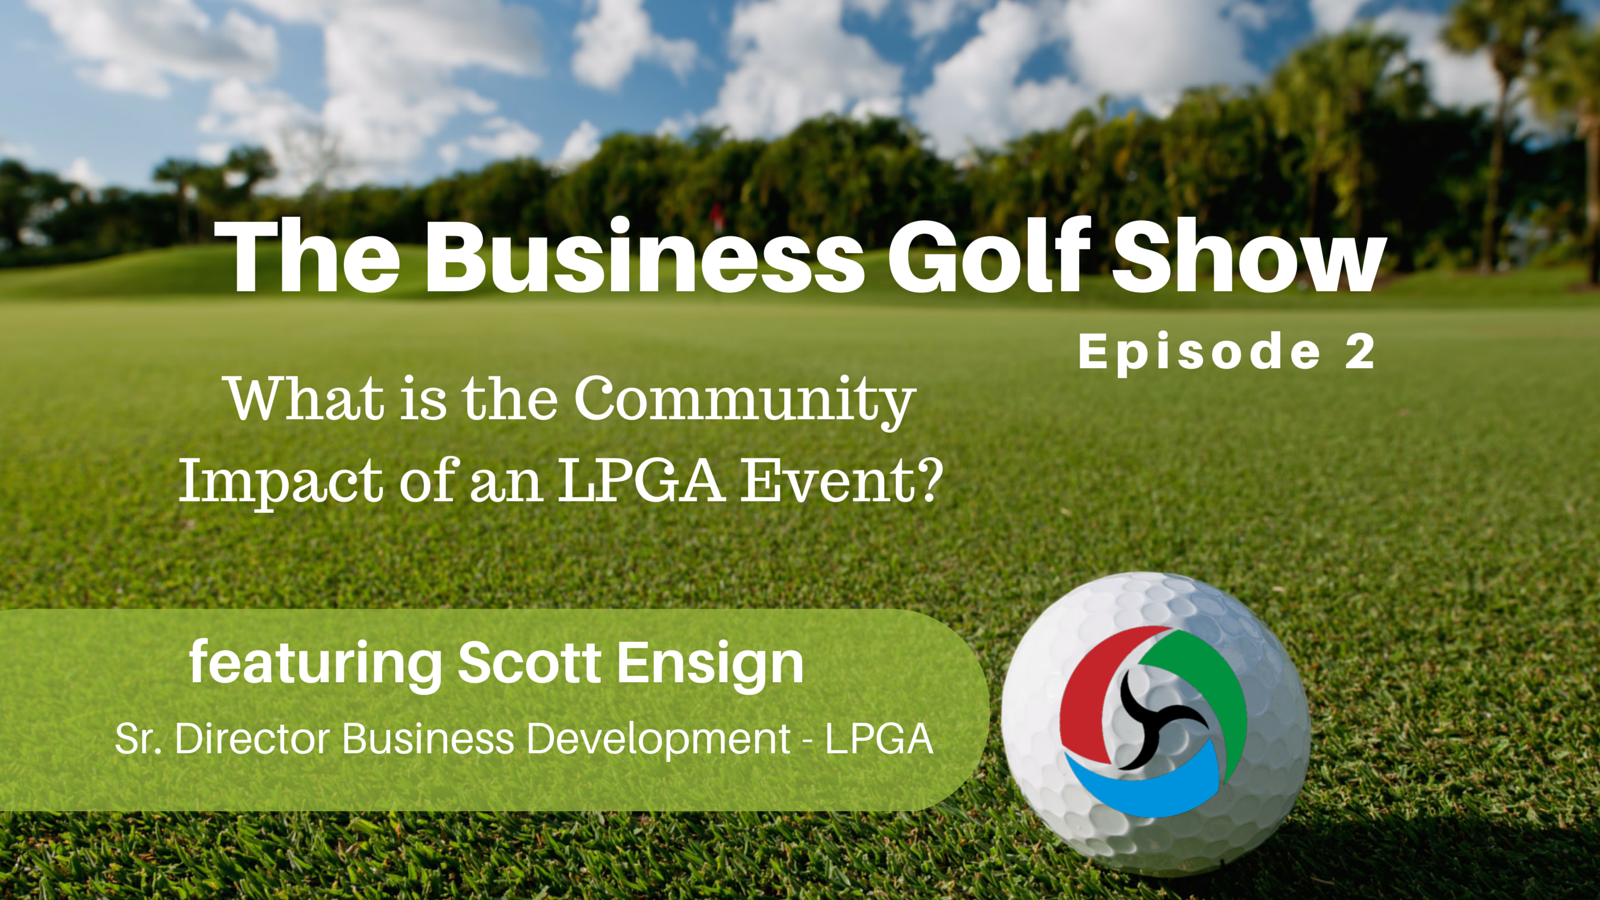 Episode 2: Interview with Scott Ensign of the LPGA